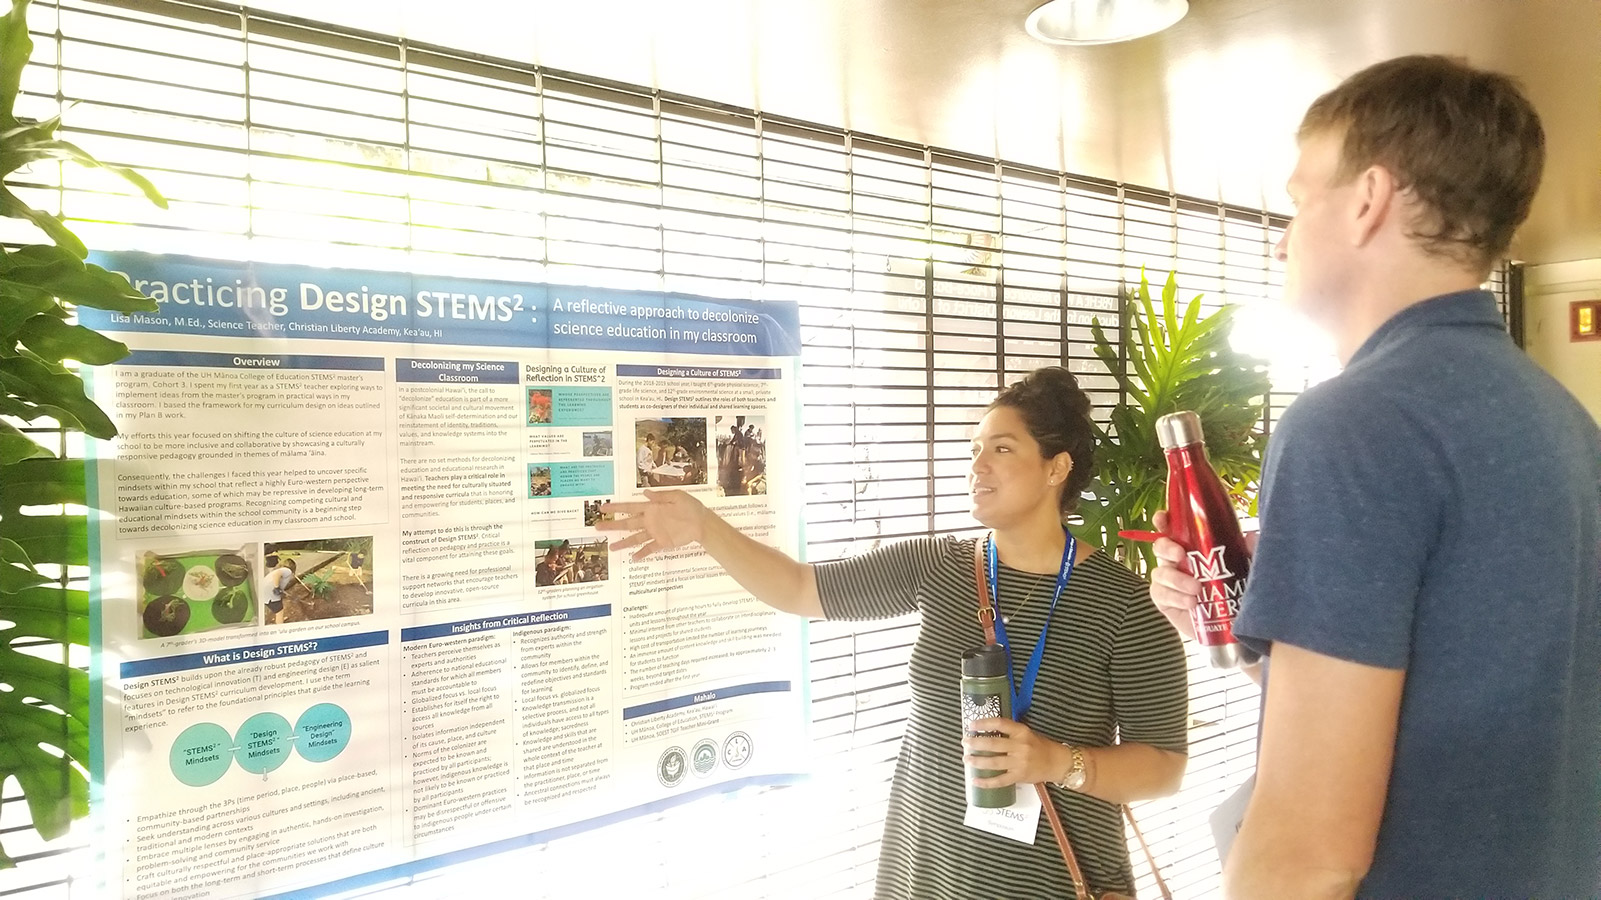 Student presenting poster